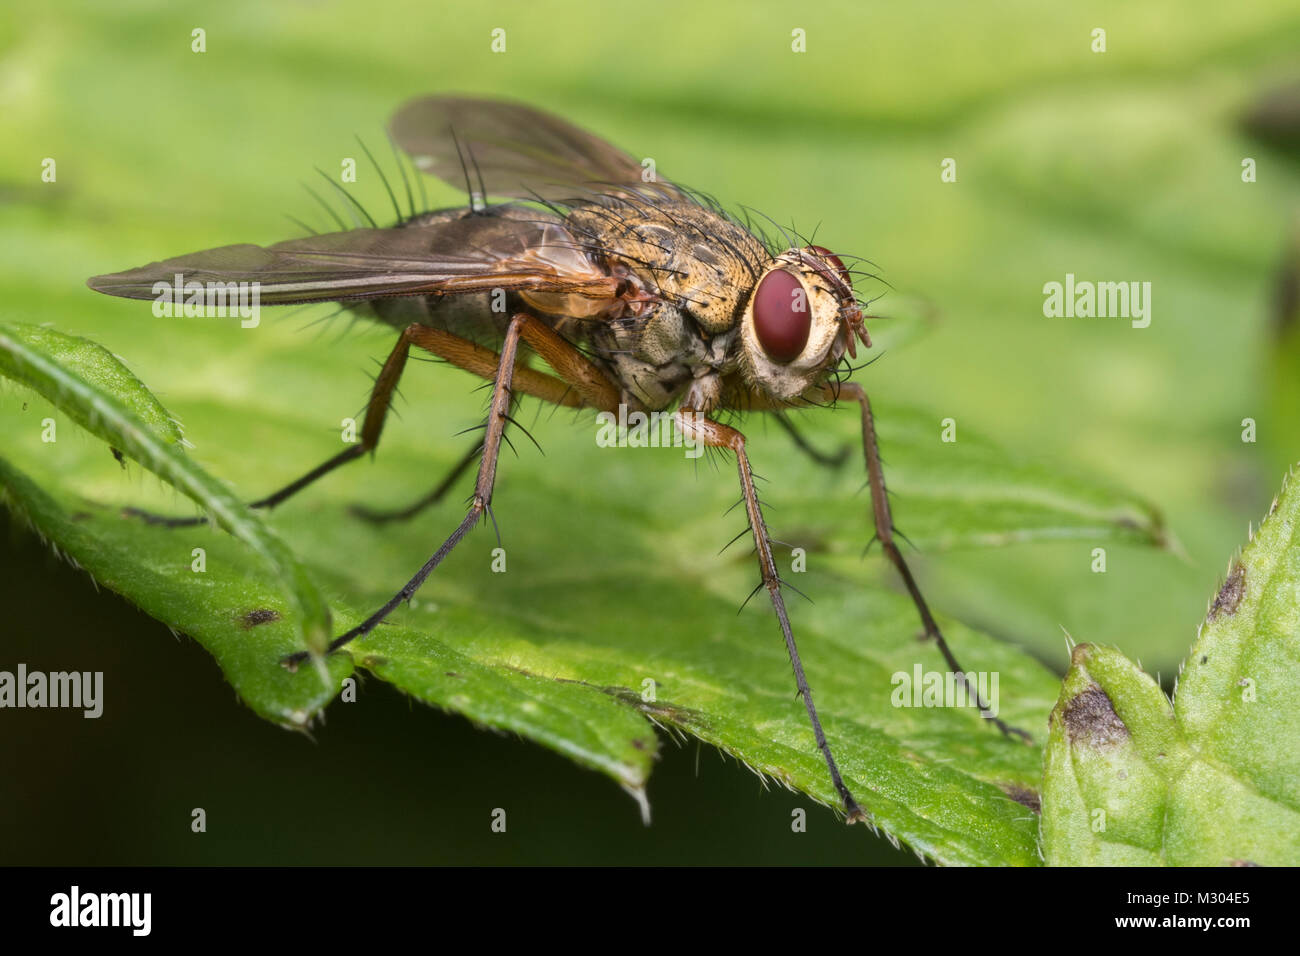 Tachinid fly (Dexiosoma caninum) perched on a leaf. Tipperary, Ireland. Stock Photo